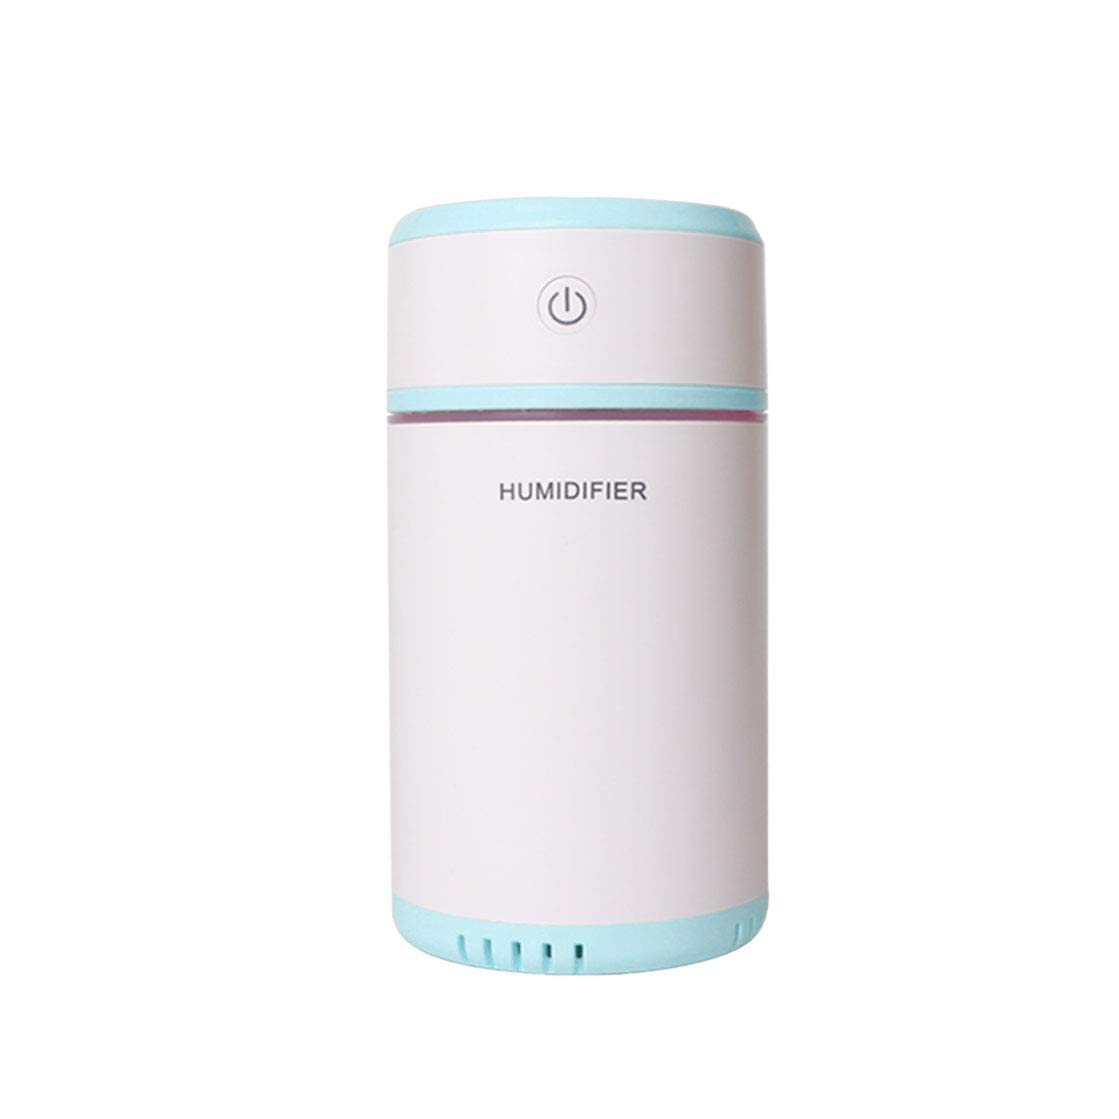 300ml Luftbefeuchter LED-Licht Humidifier Raumbefeuchter Diffuser USB yh